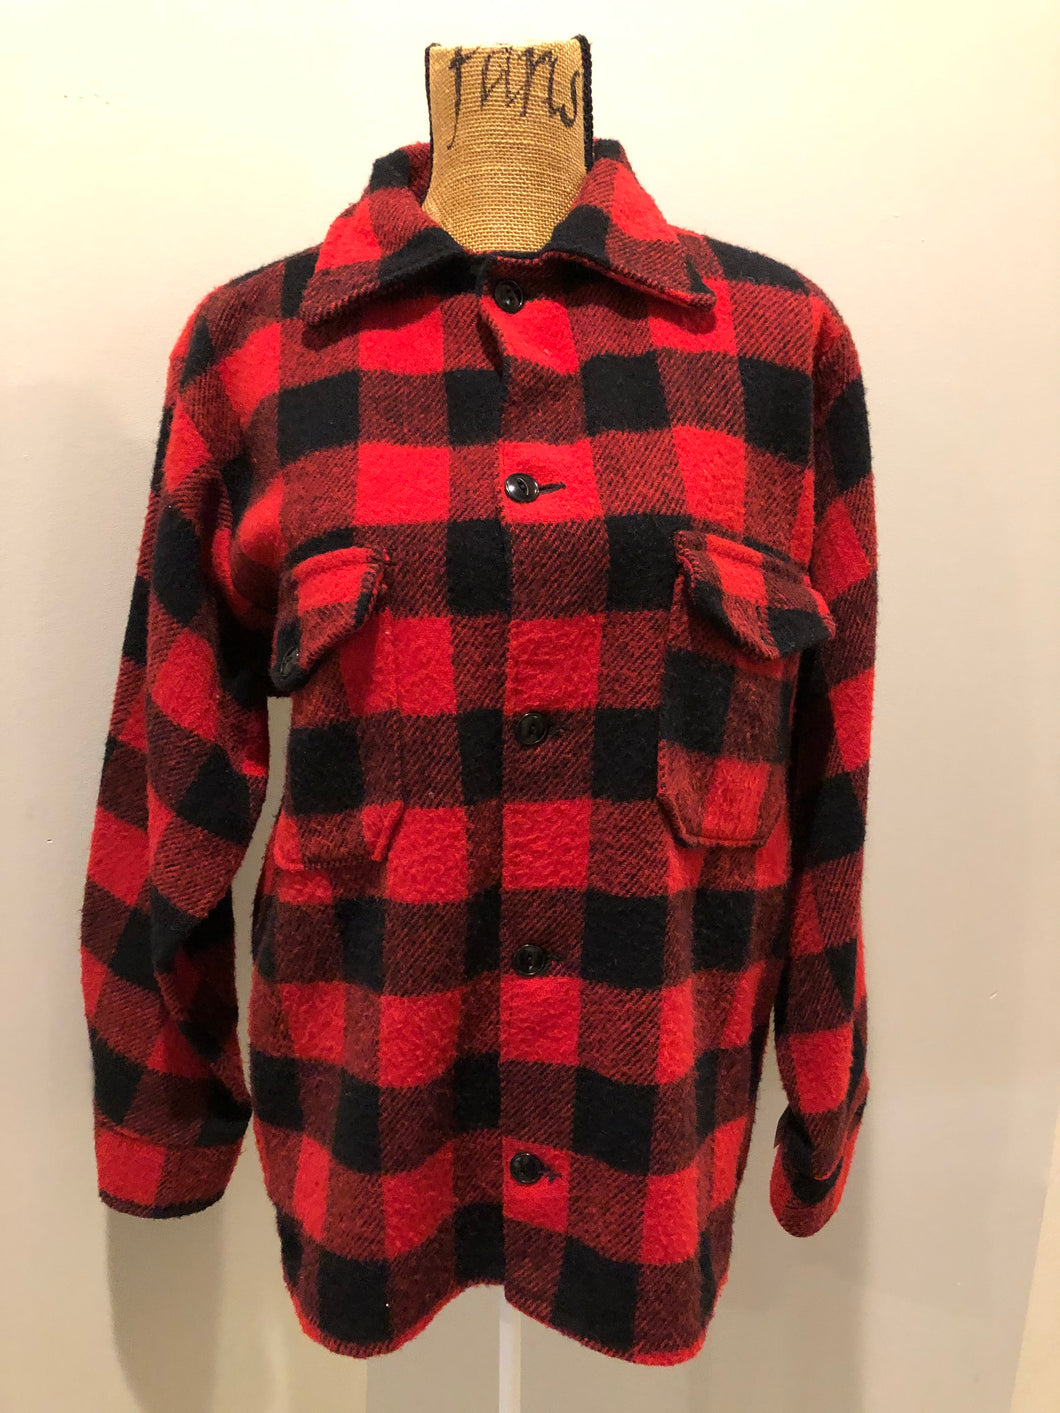 Kingspier Vintage - Red plaid lumberjack shirt with button closures and two flap pockets on the chest.